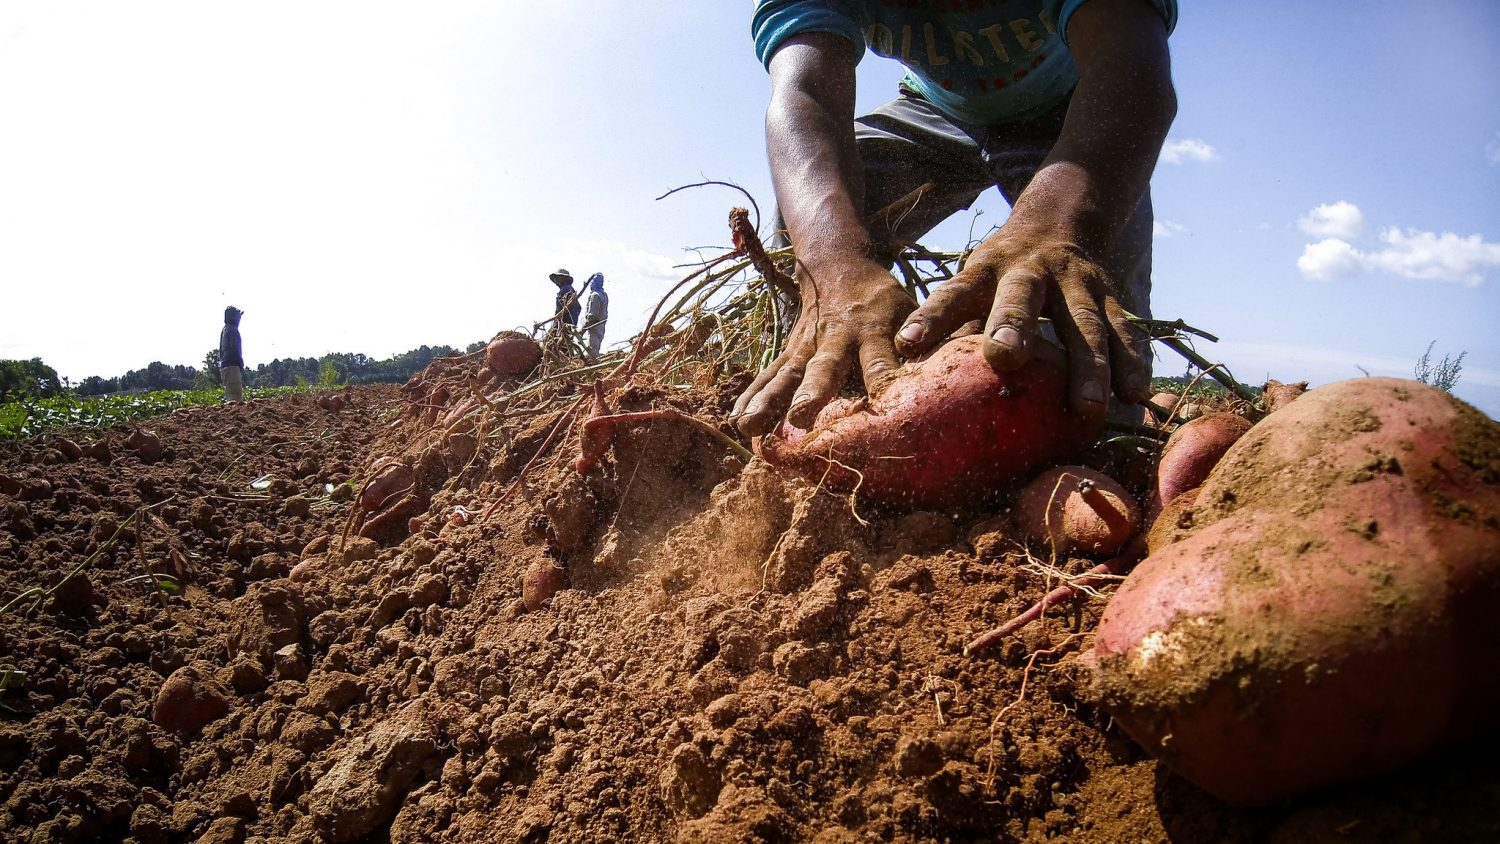 Hands digging sweet potatoes from the ground, with other workers standing on the horizon